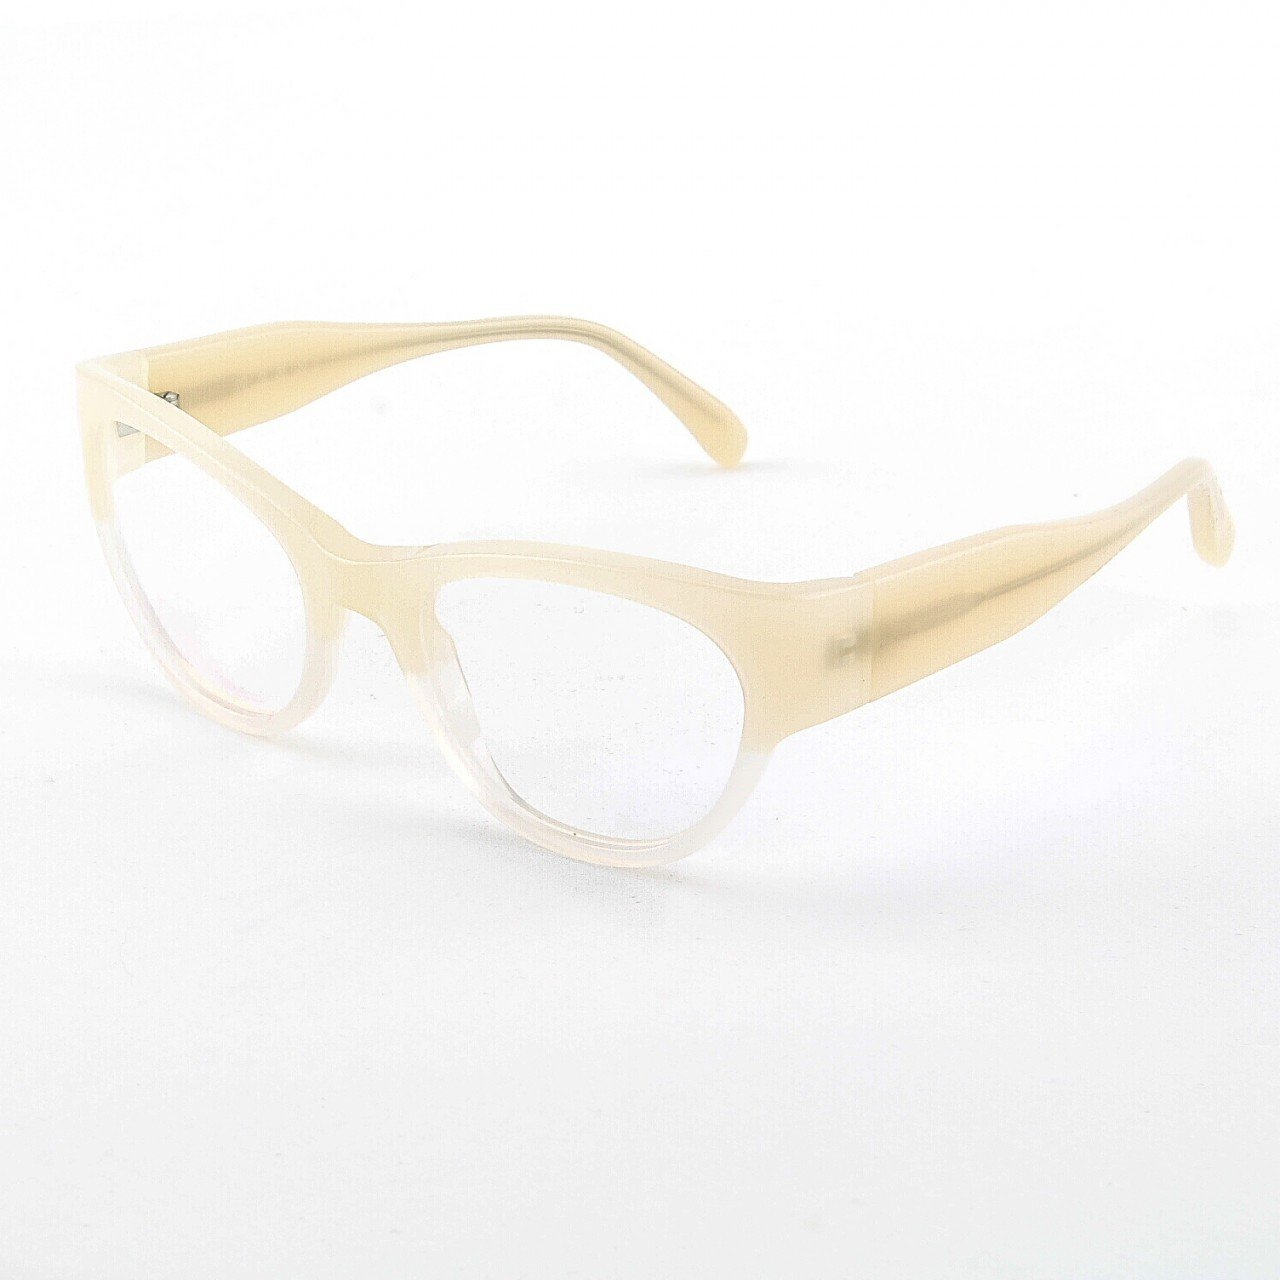 Marni MA683S Eyeglasses Col. 07 Two-tone Translucent Cream with Clear Lenses